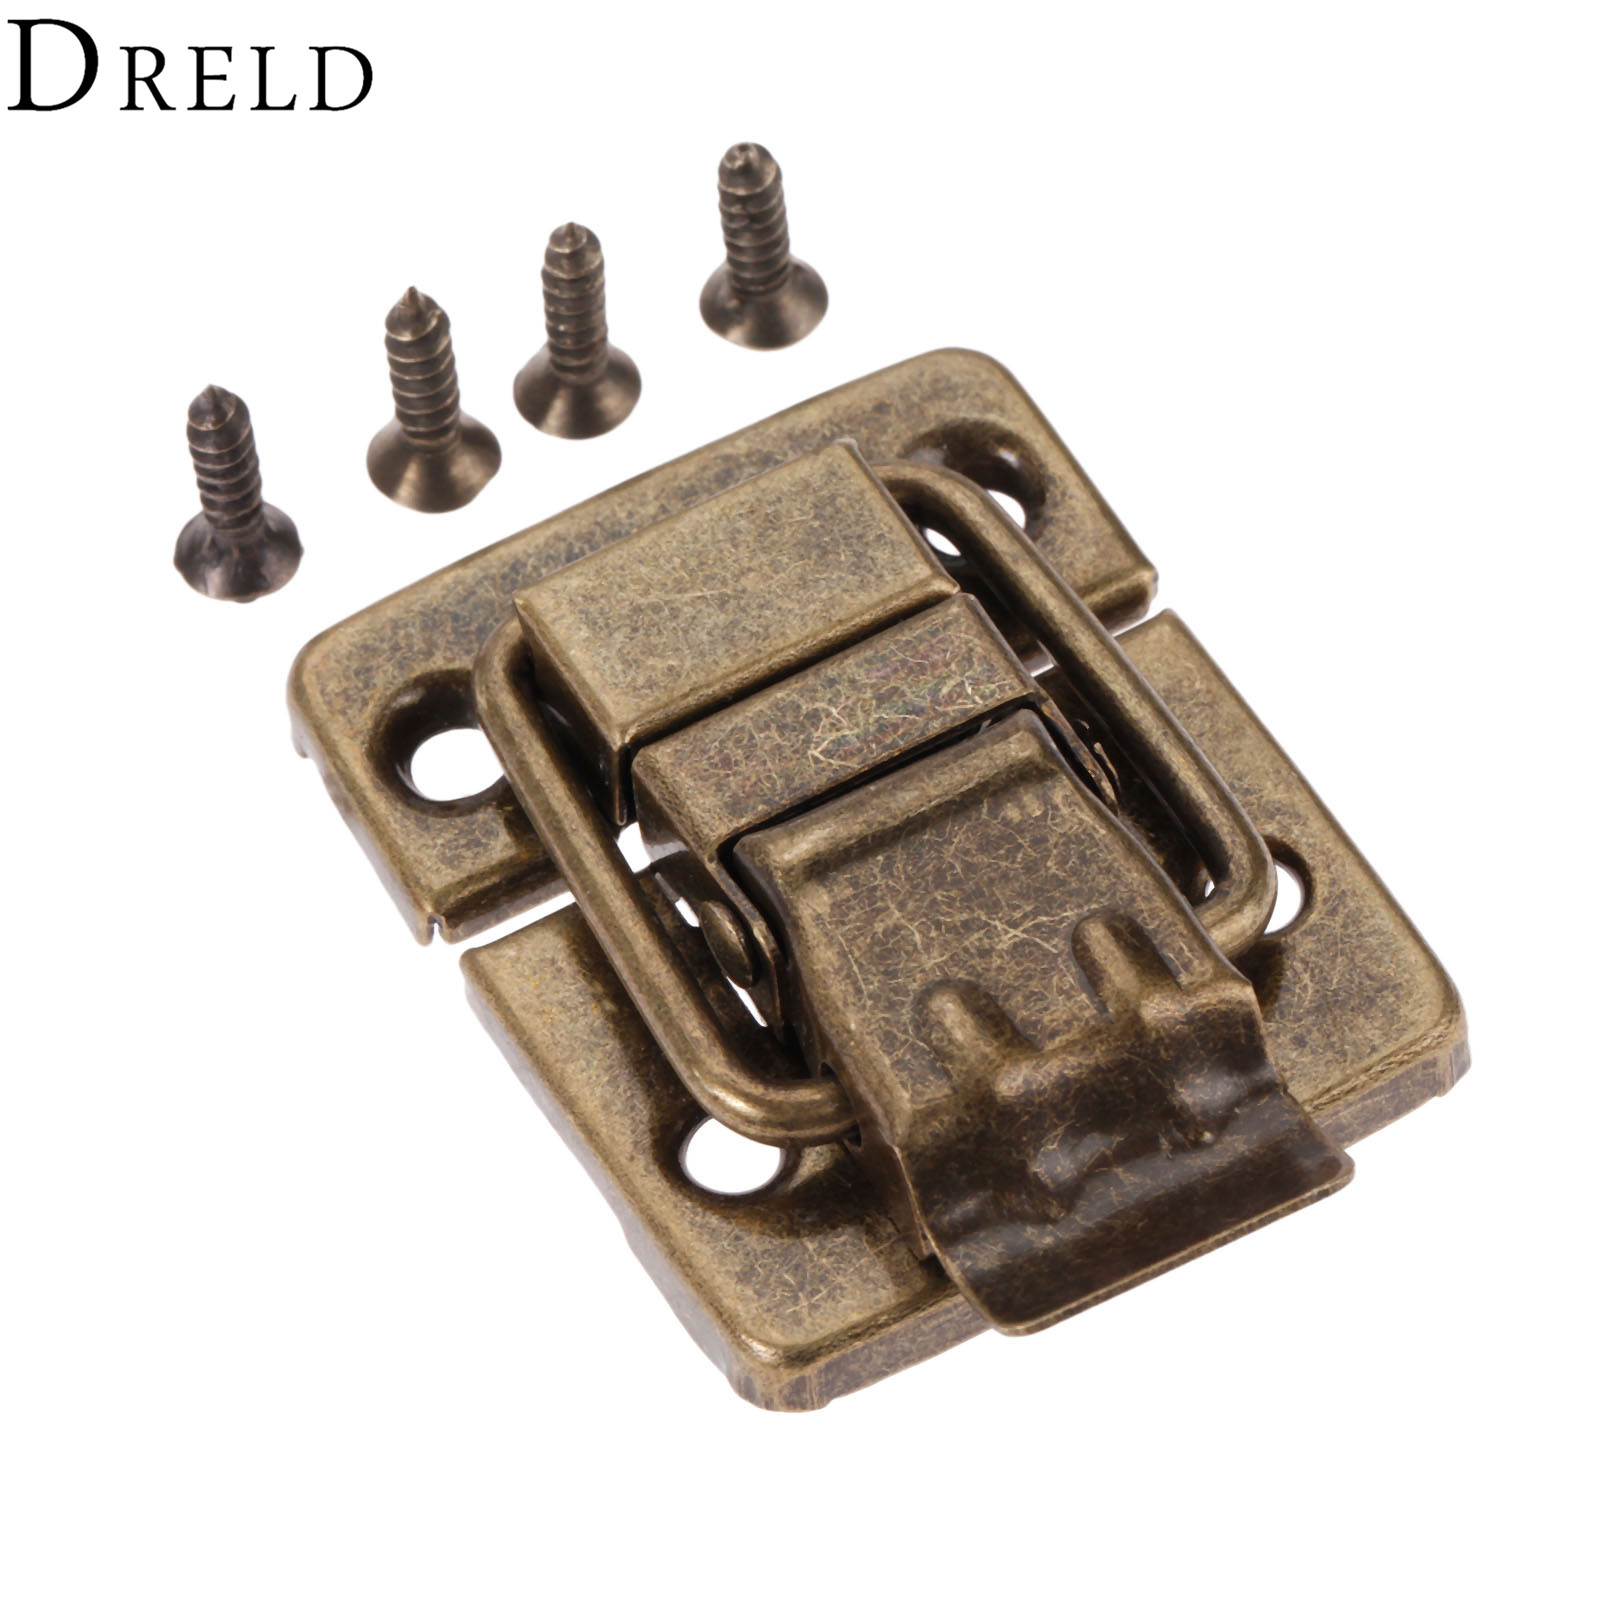 DRELD Antique Bronze Jewelry Wood Box Toggle Latch Hasp Drawer Latches Decorative Case Buckle Clasp Furniture Hardware 30*36mm